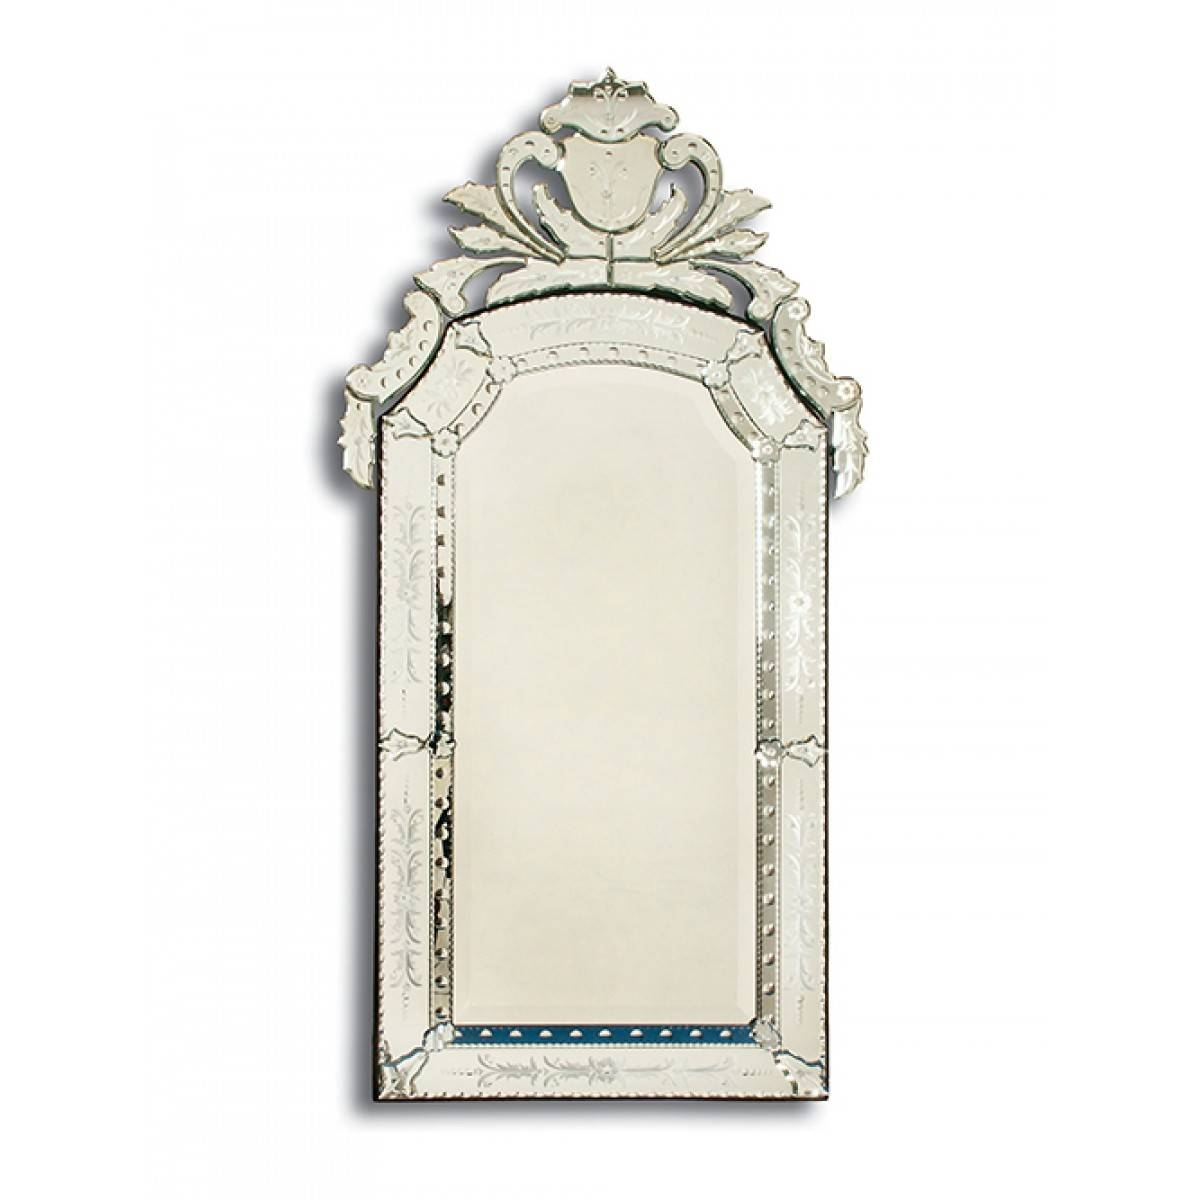 La Barge Mirrors & Table Outlet | Discount La Barge within Venetian Etched Glass Mirrors (Image 14 of 15)